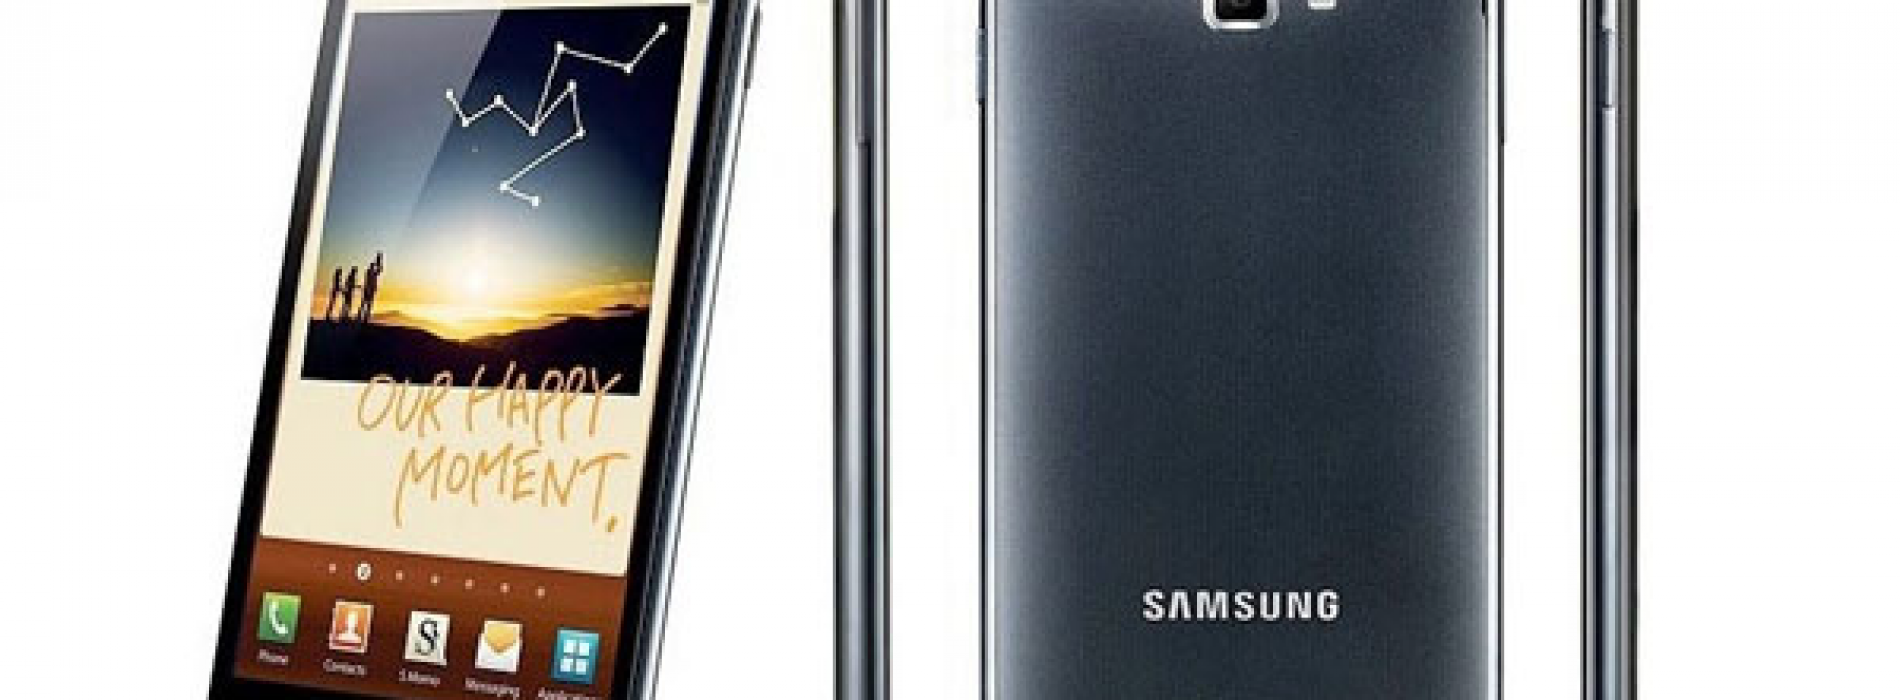 Samsung: 5 Million Galaxy Notes sold and climbing